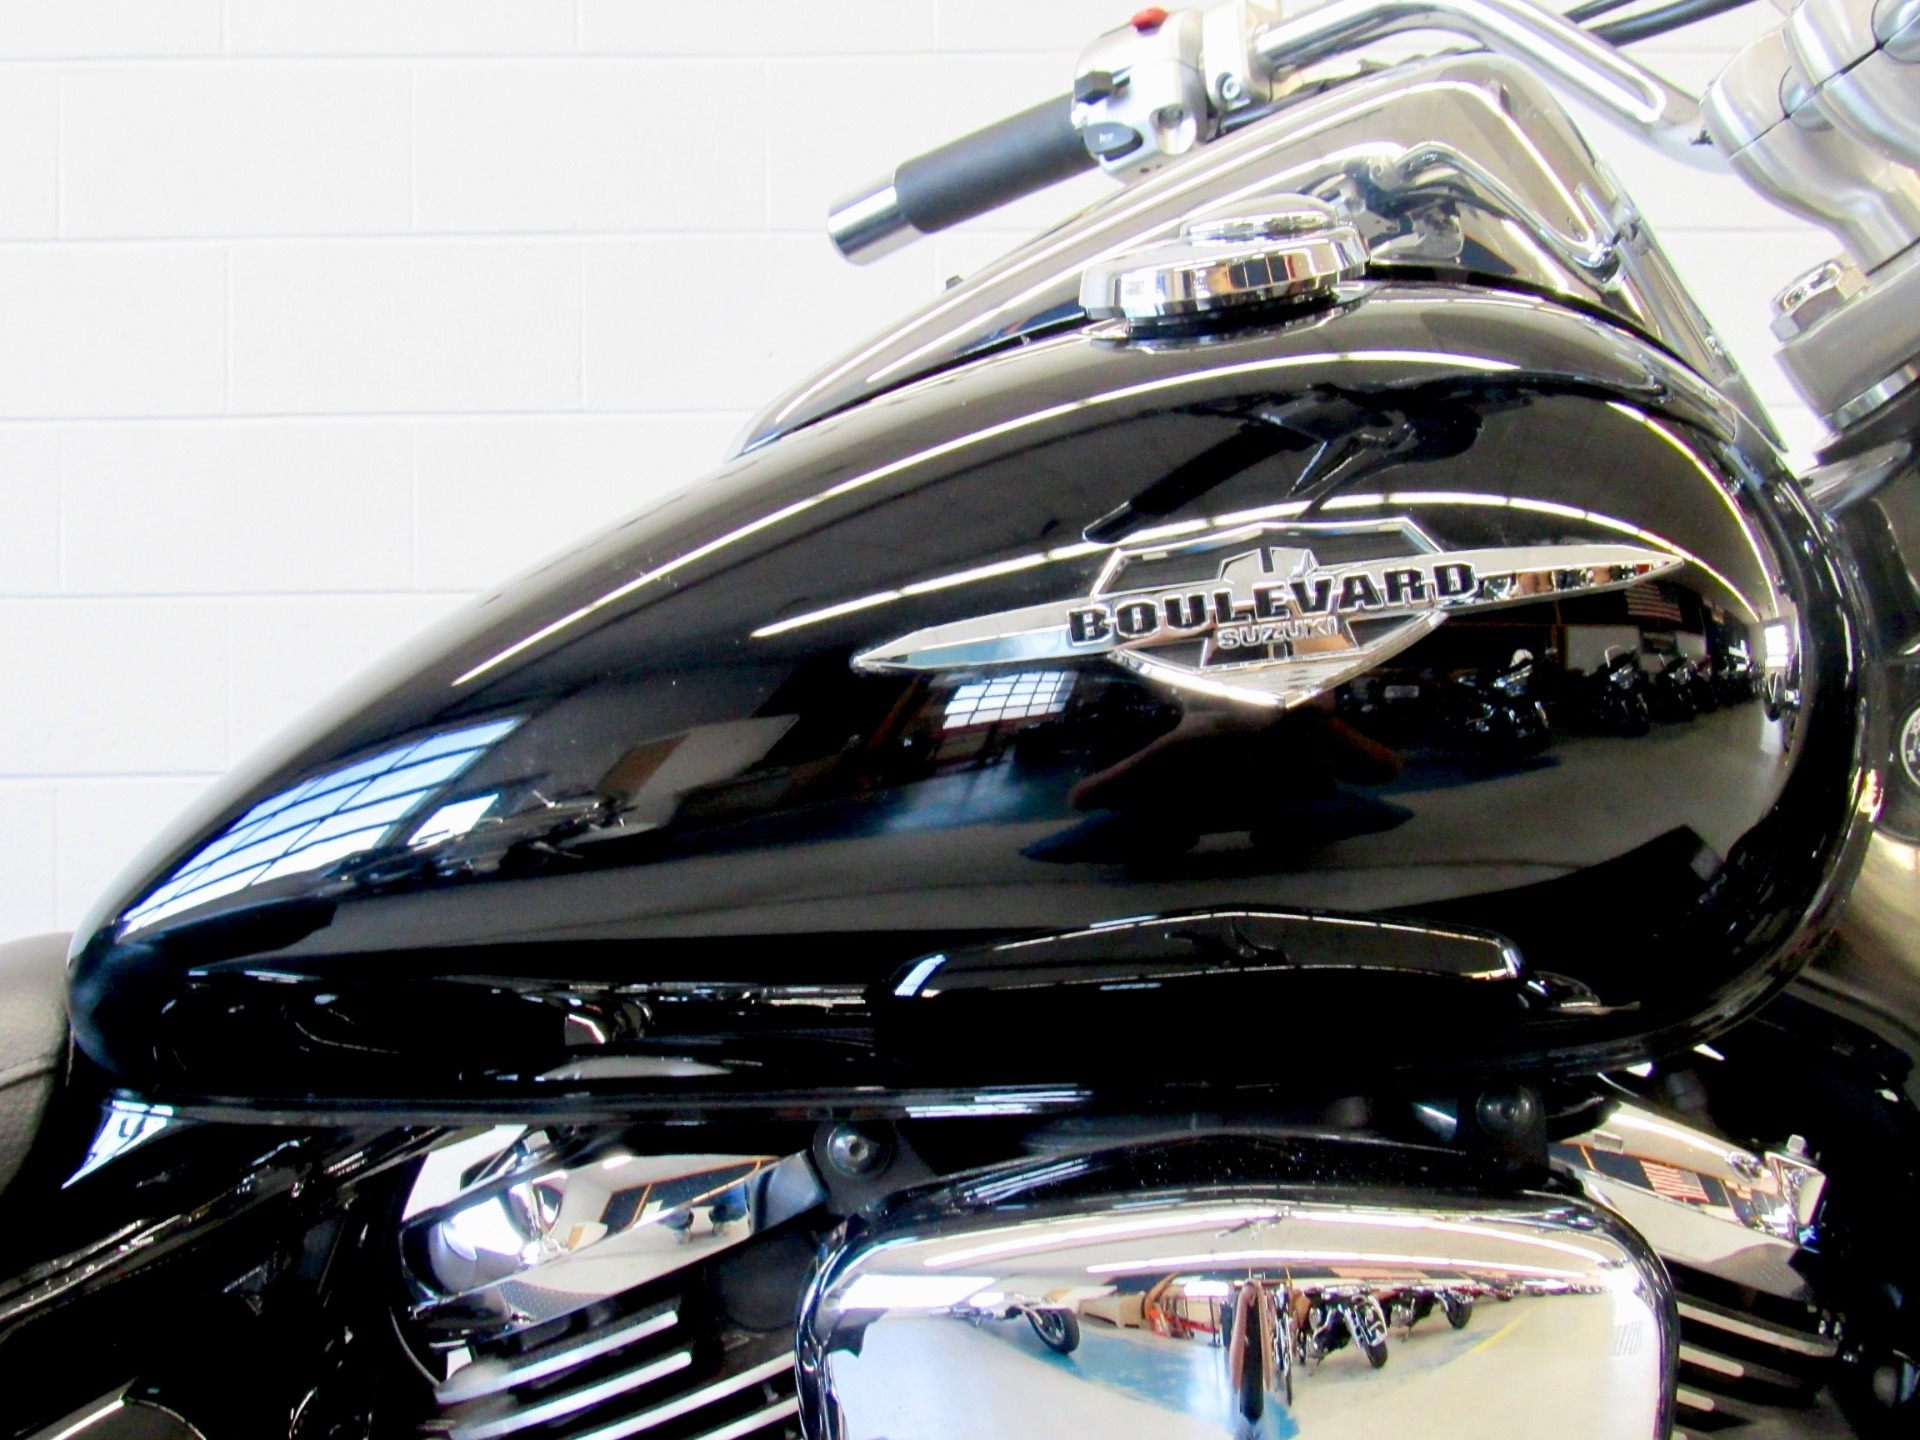 2009 Suzuki Boulevard C50 in Fredericksburg, Virginia - Photo 13